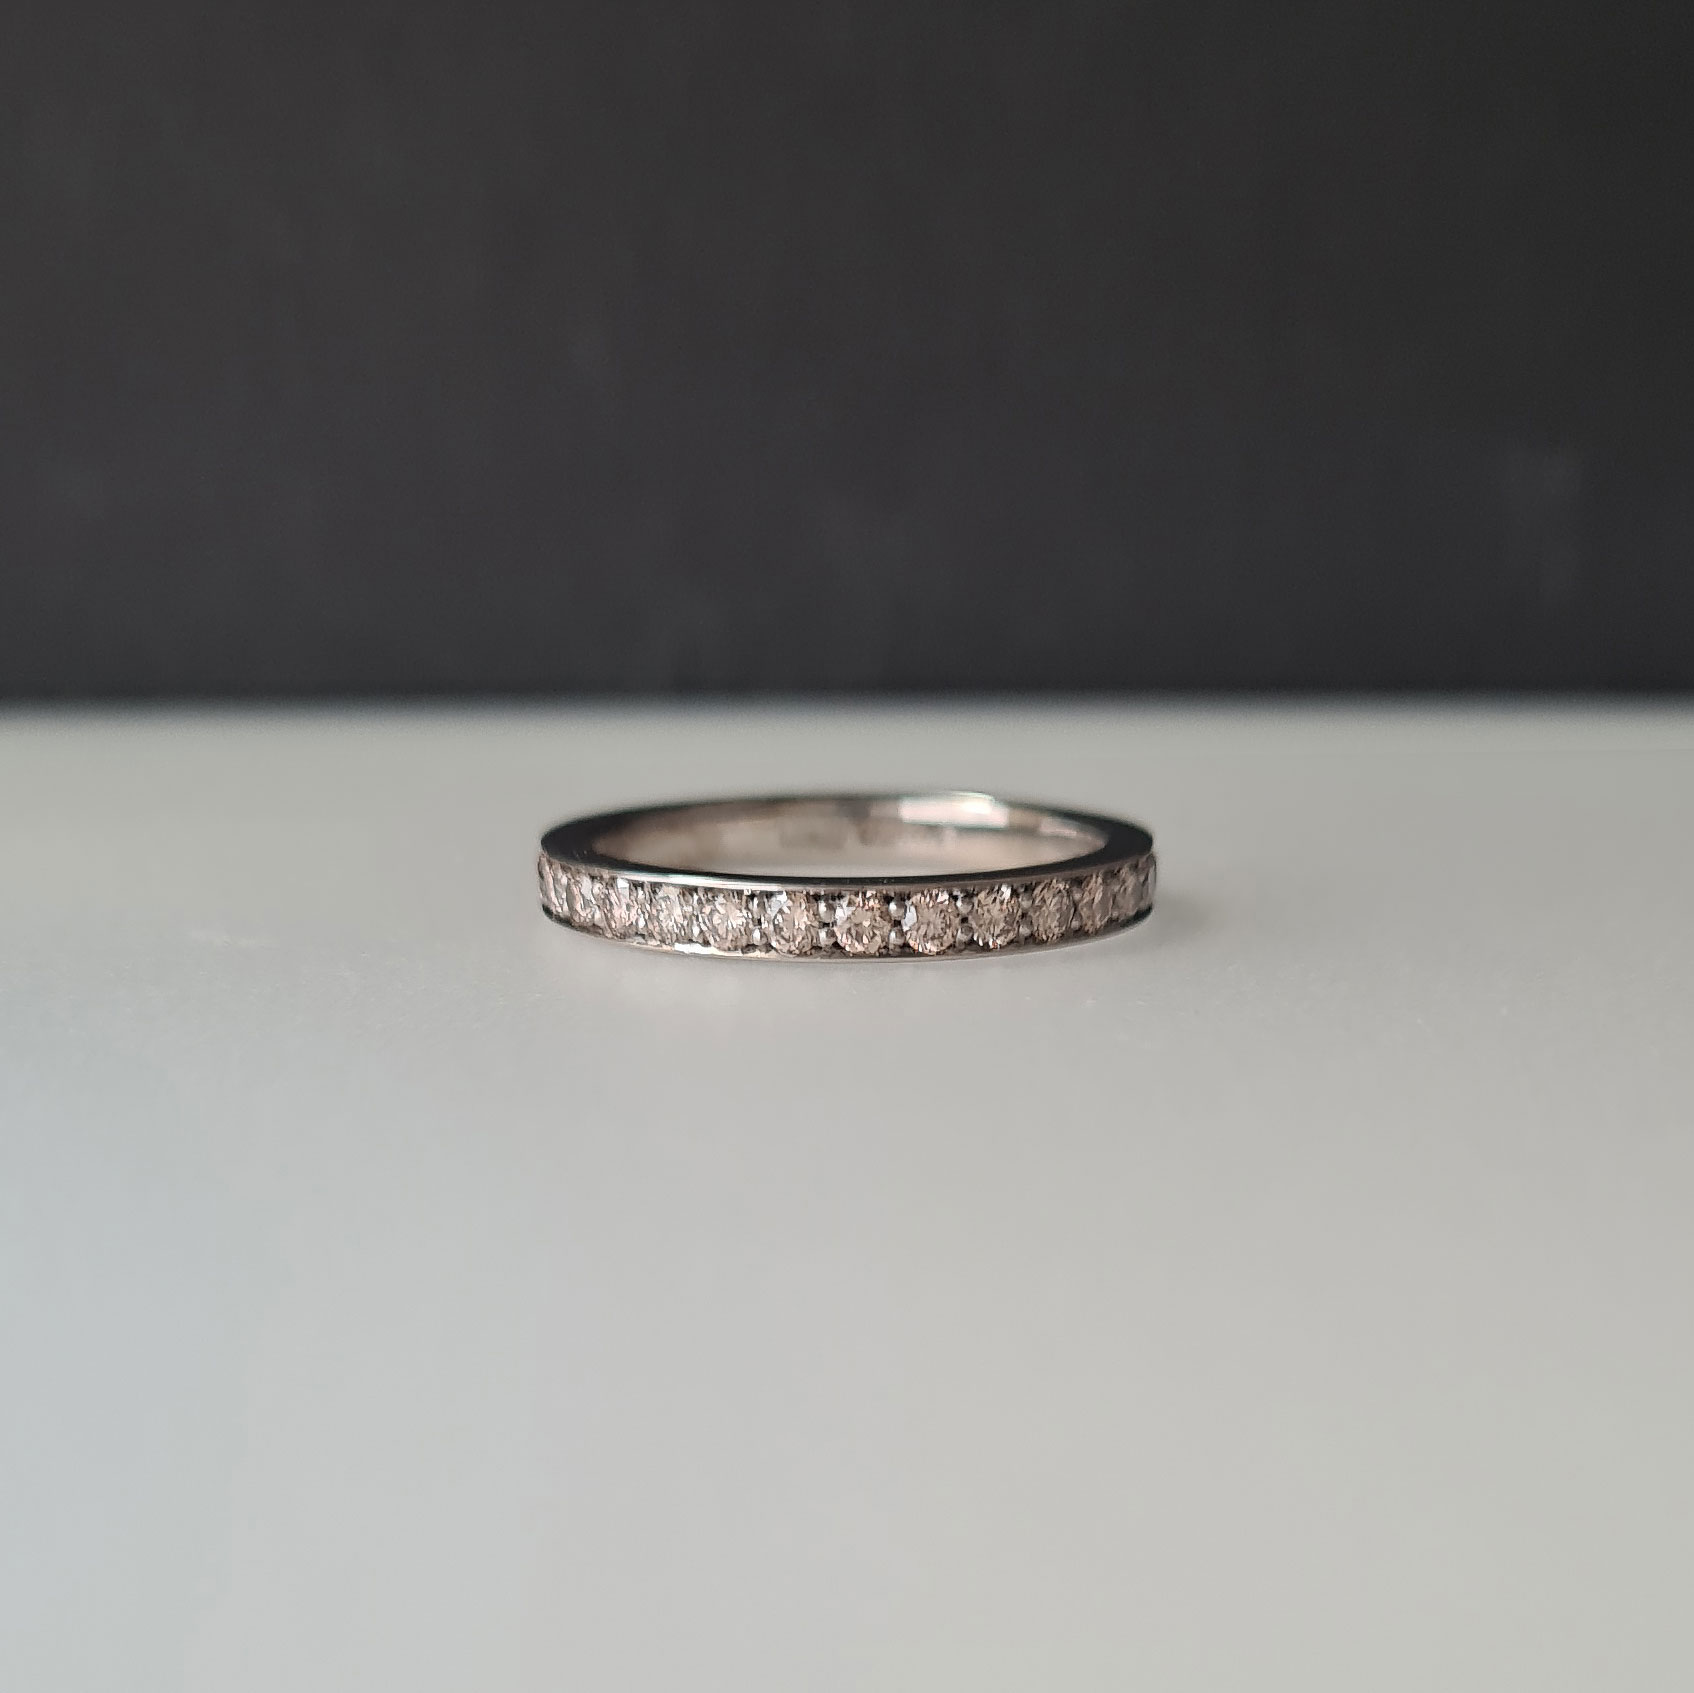 Champagne diamond eternity ring in white Fairtrade gold laying down flat on a black and white background.